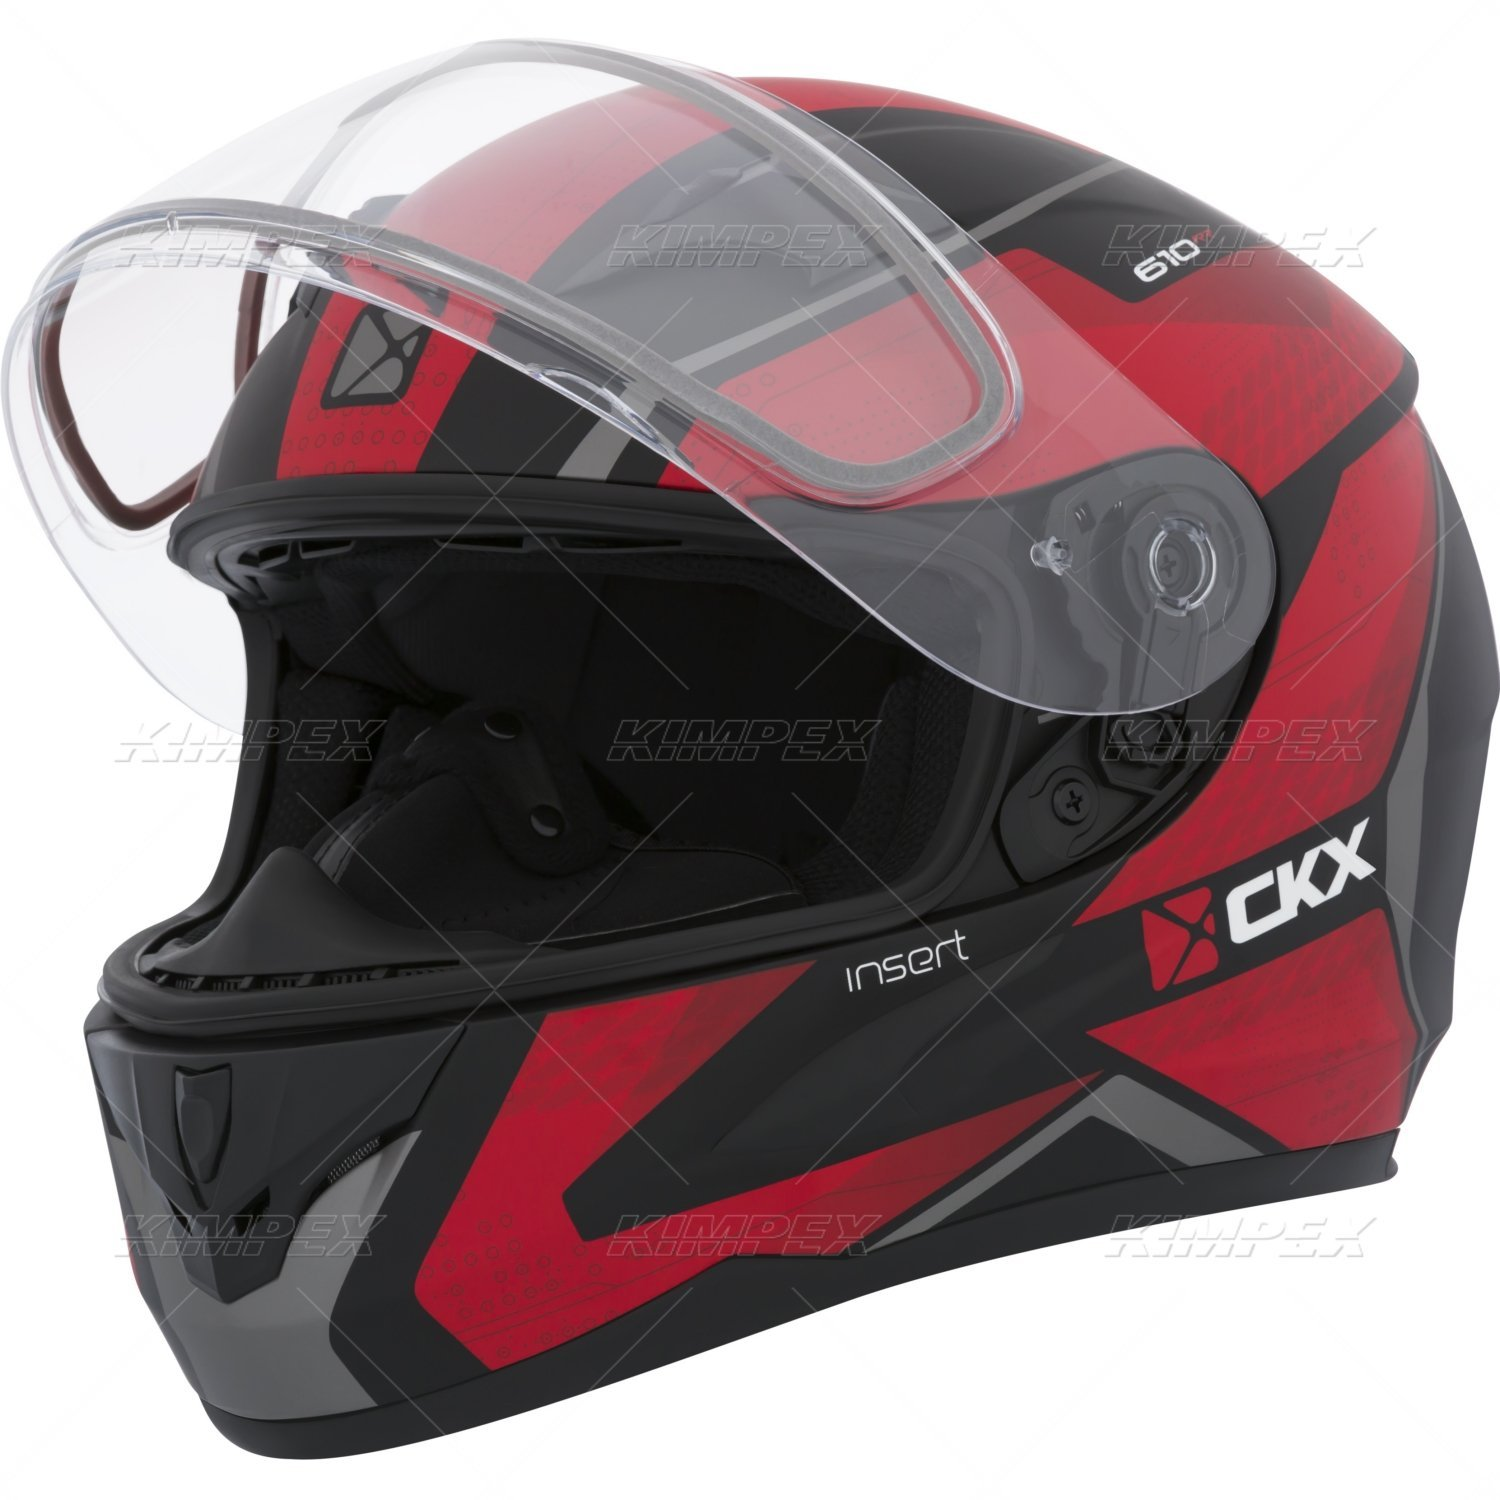 CKX Insert Winter Full-Face Helmet